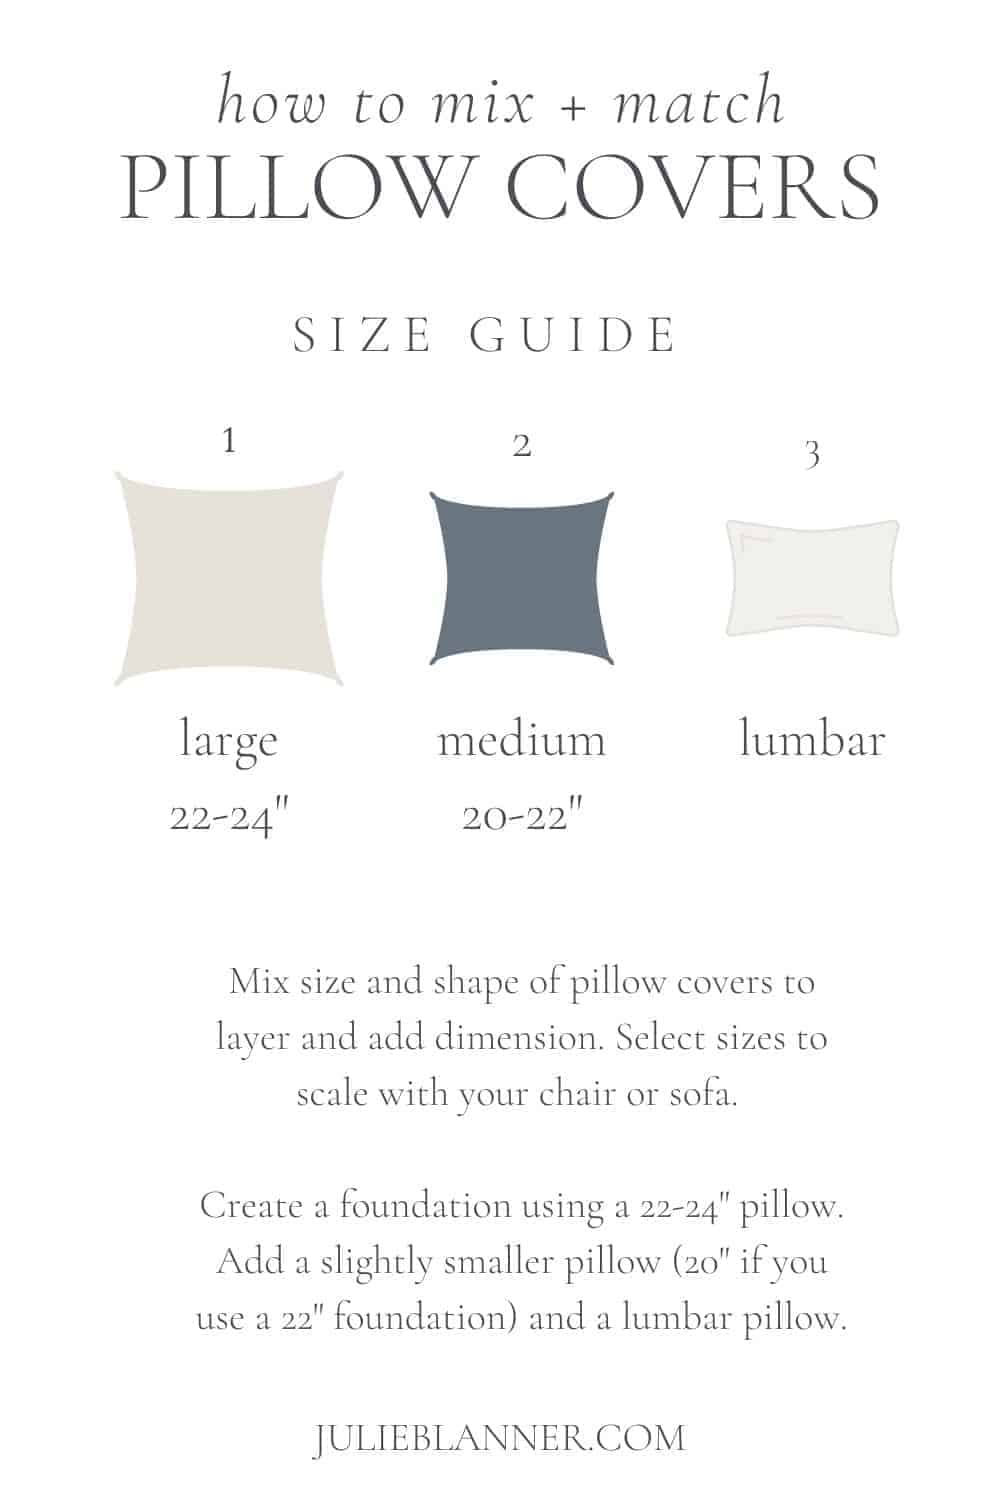 guide to pillow cover sizes